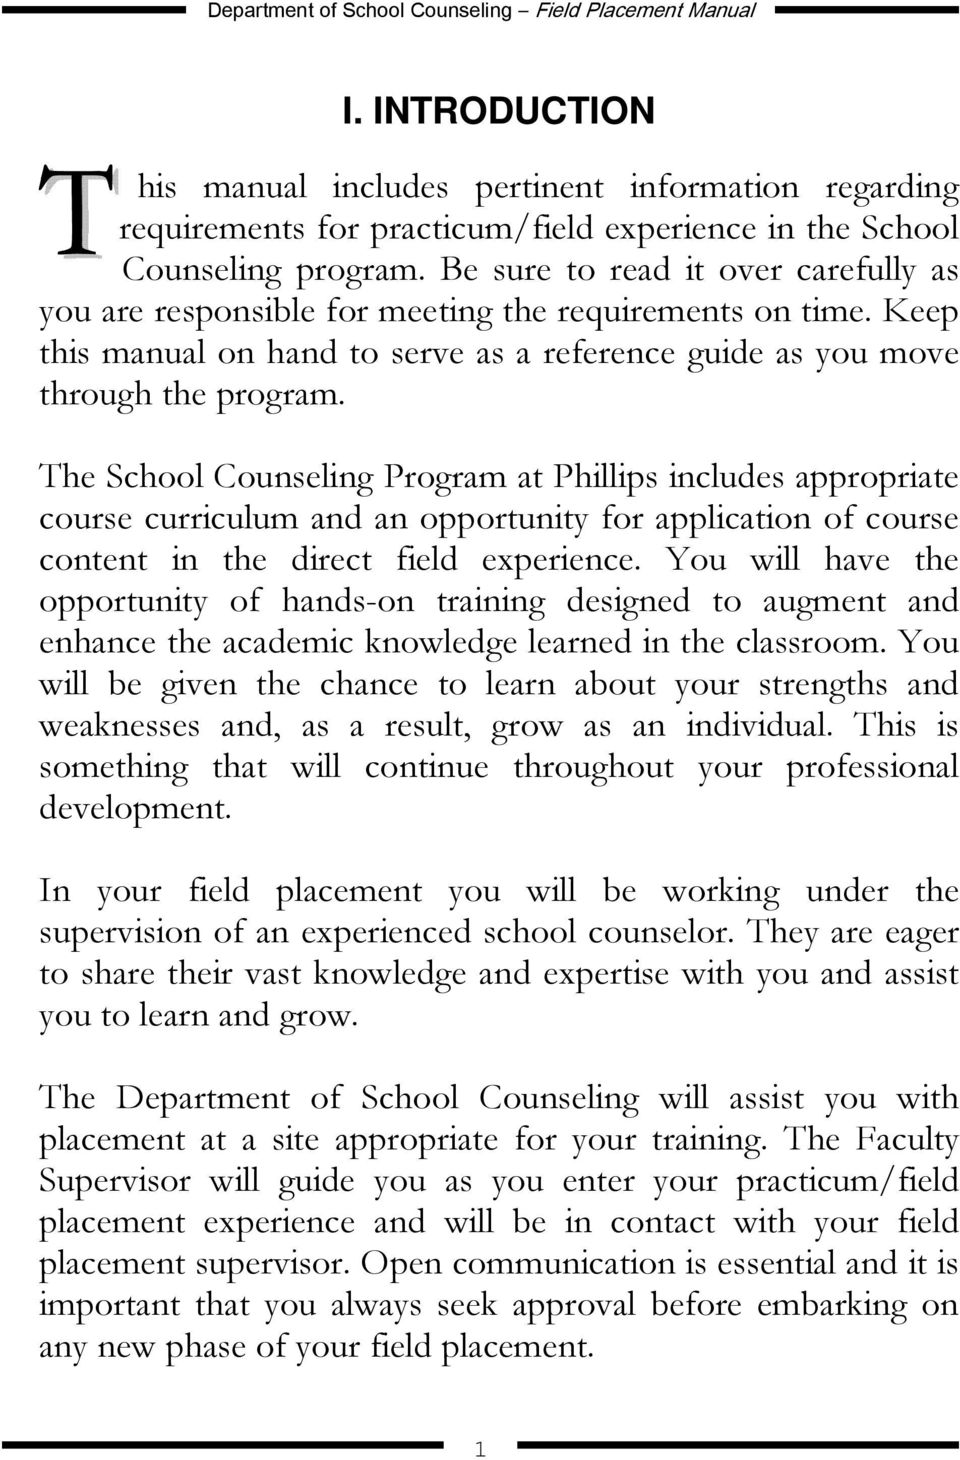 The School Counseling Program at Phillips includes appropriate course curriculum and an opportunity for application of course content in the direct field experience.